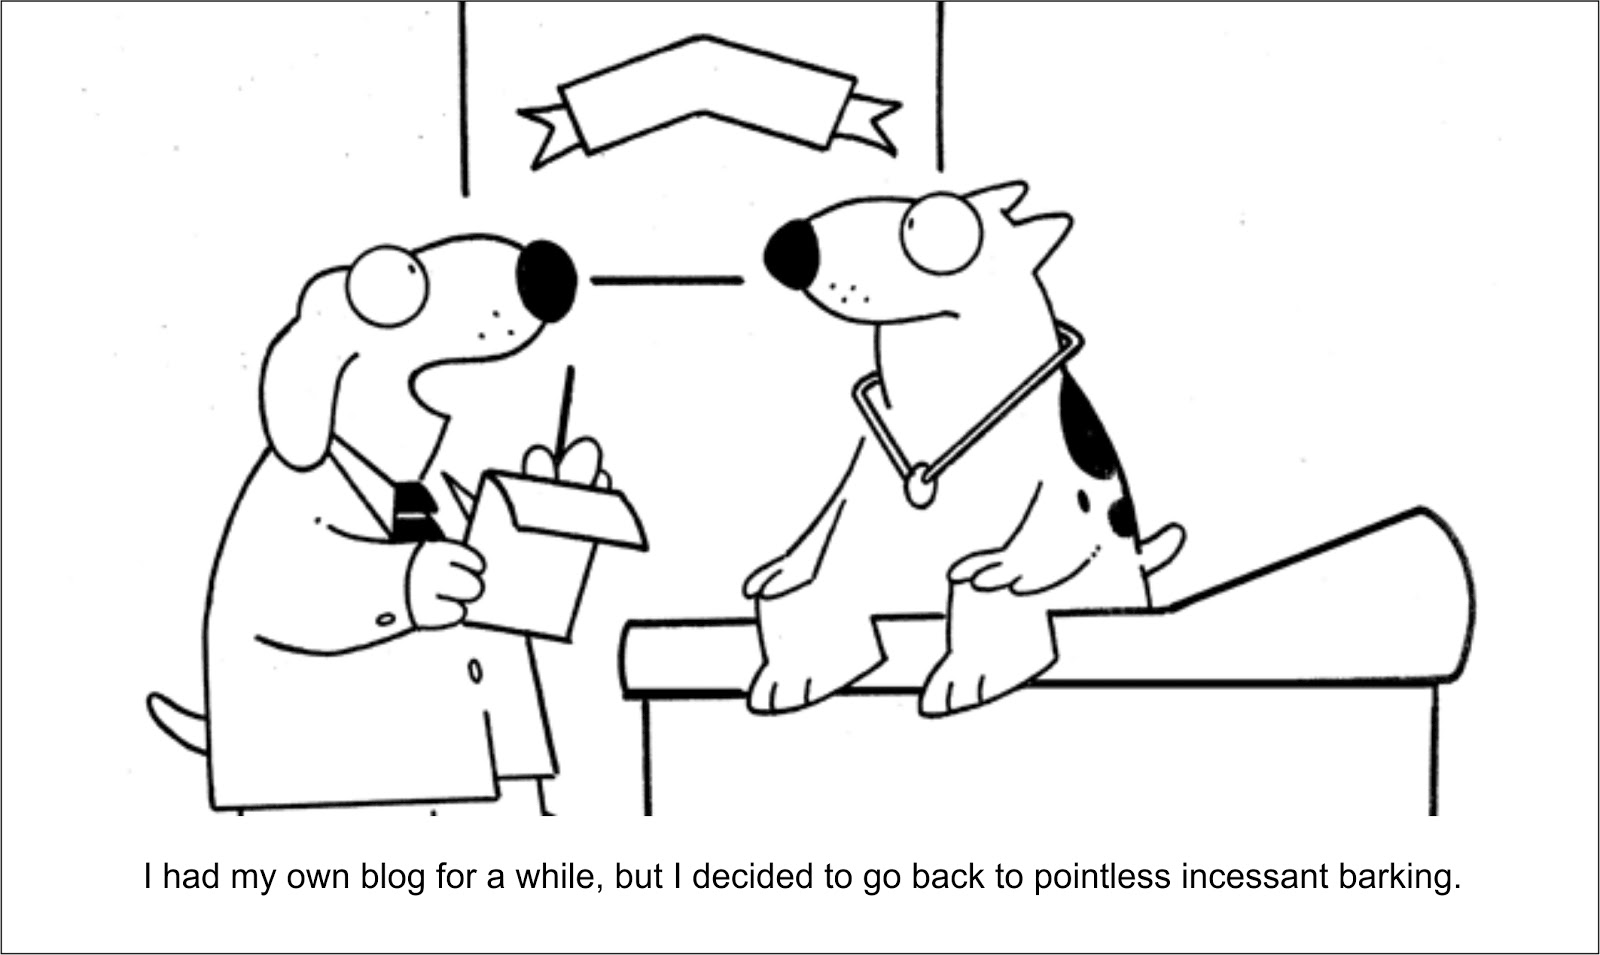 Dog behavior research paper